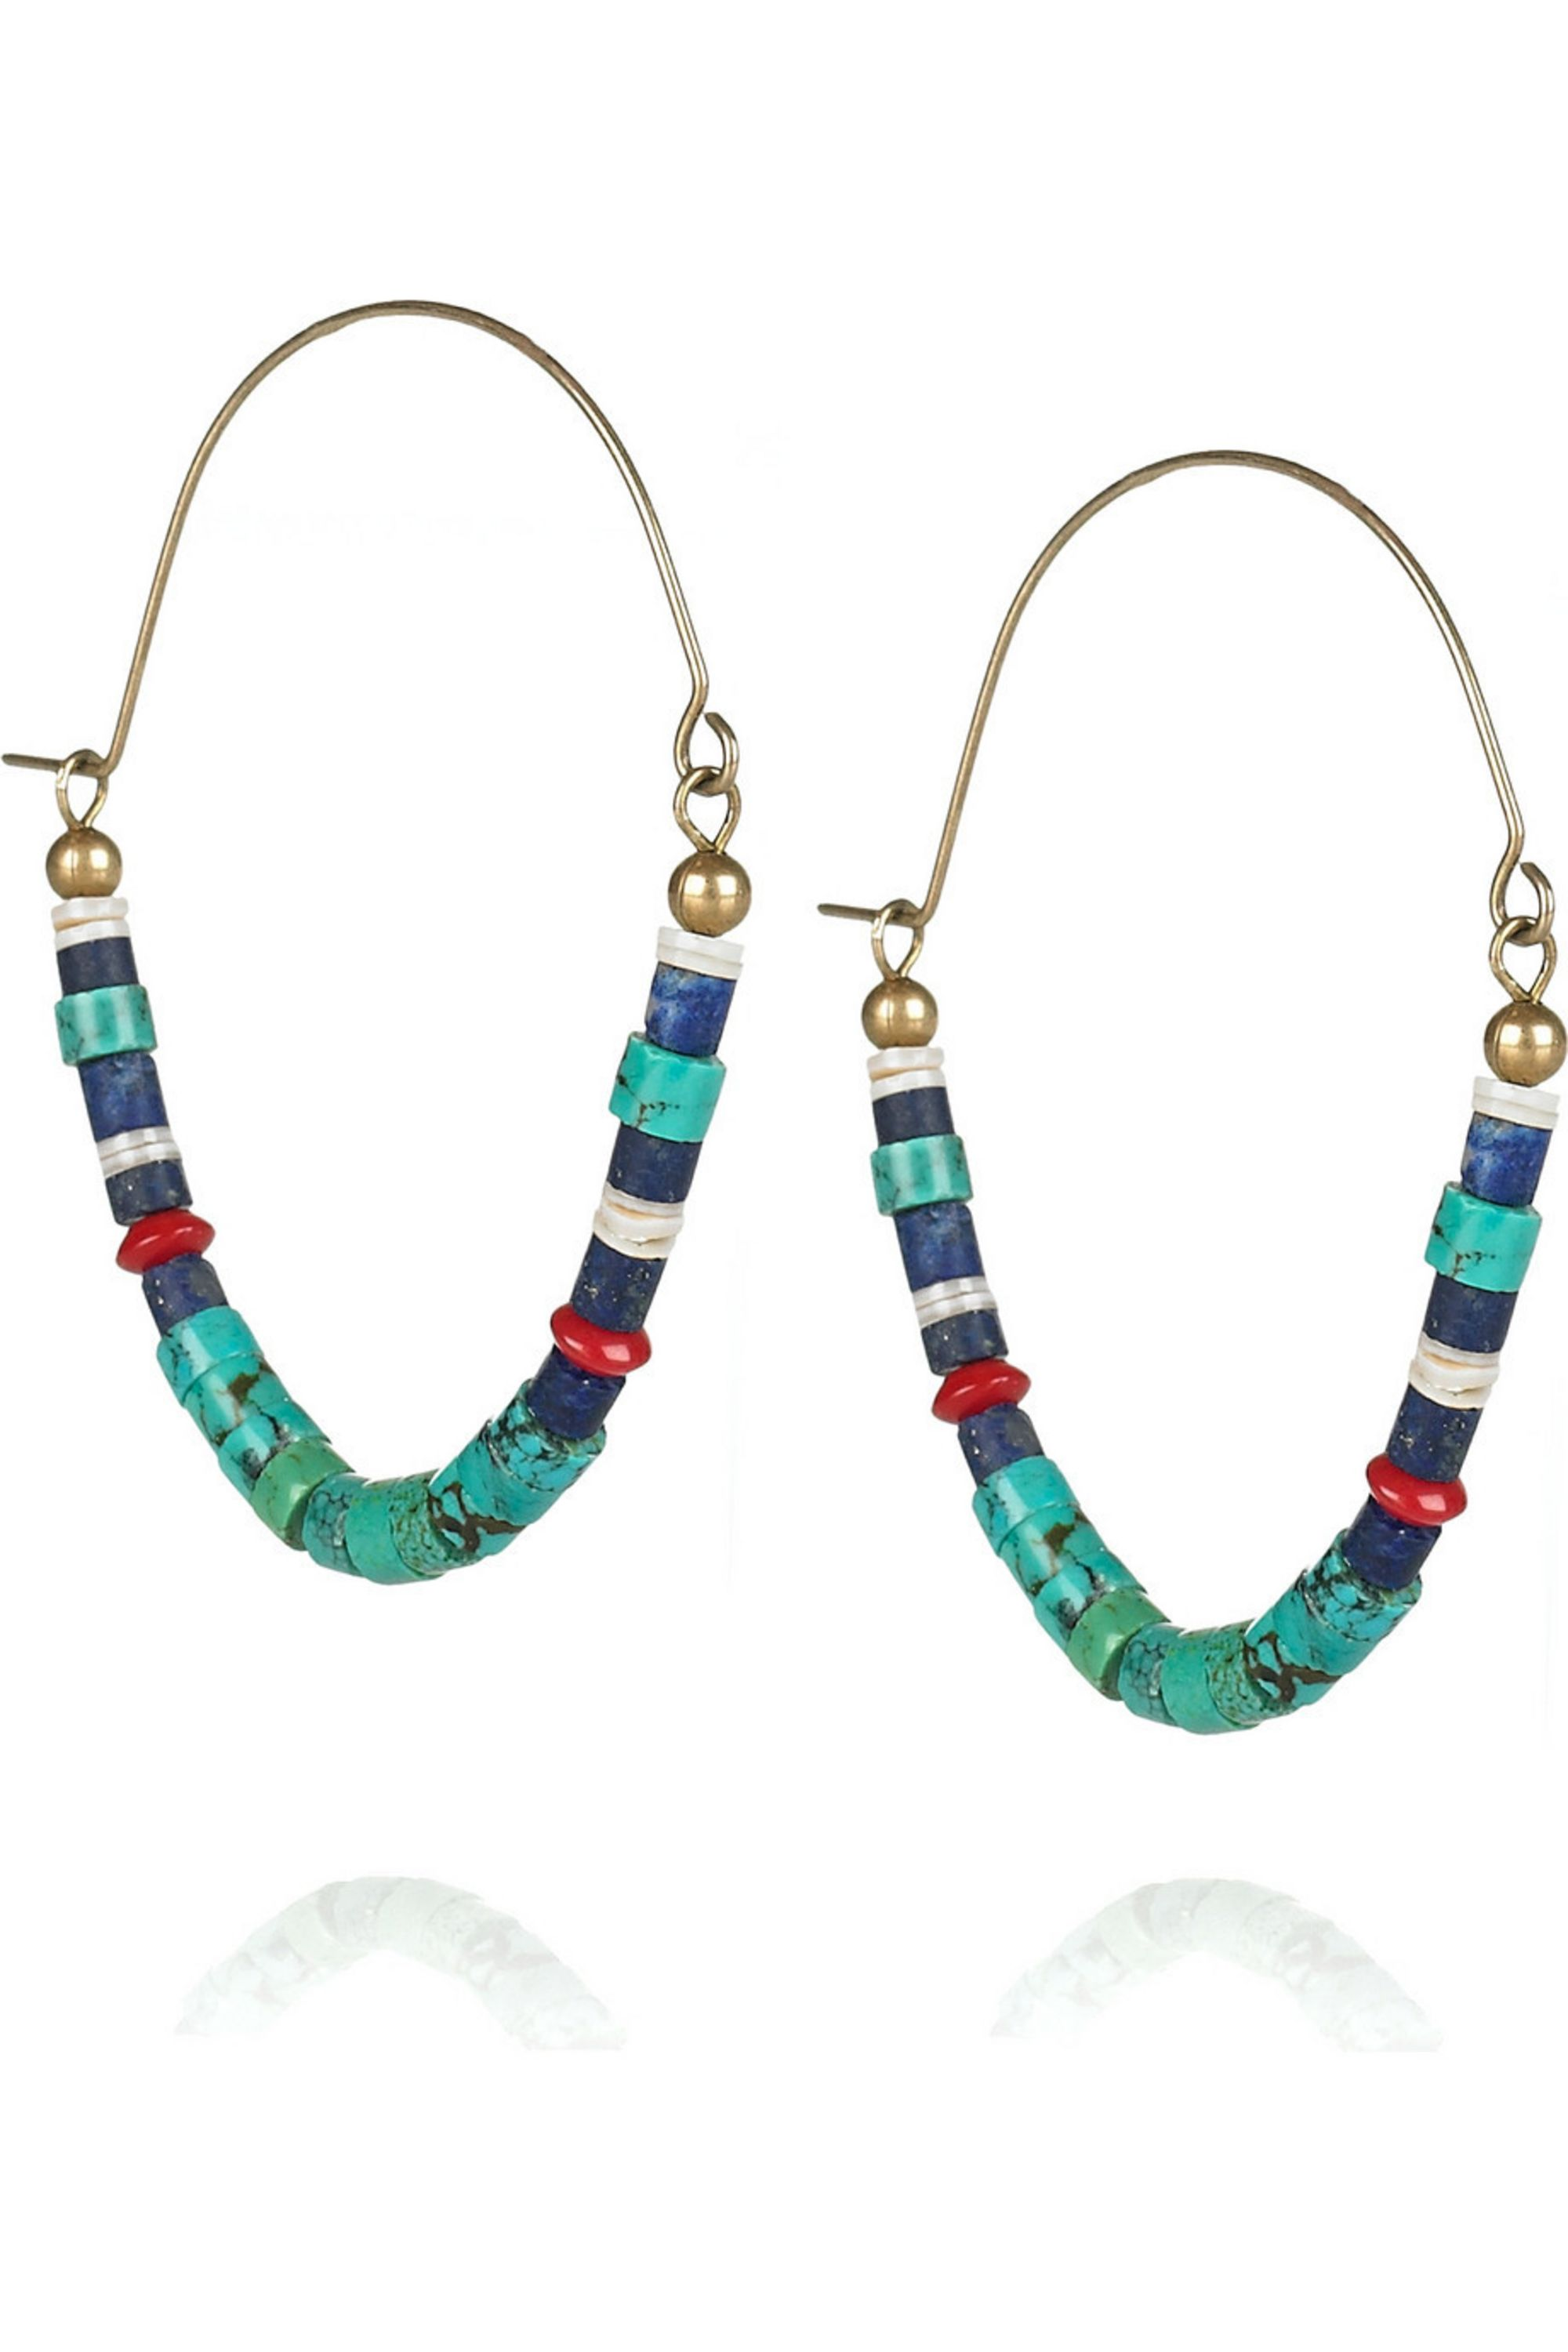 Isabel Marant Out of Africa shell and stone earrings